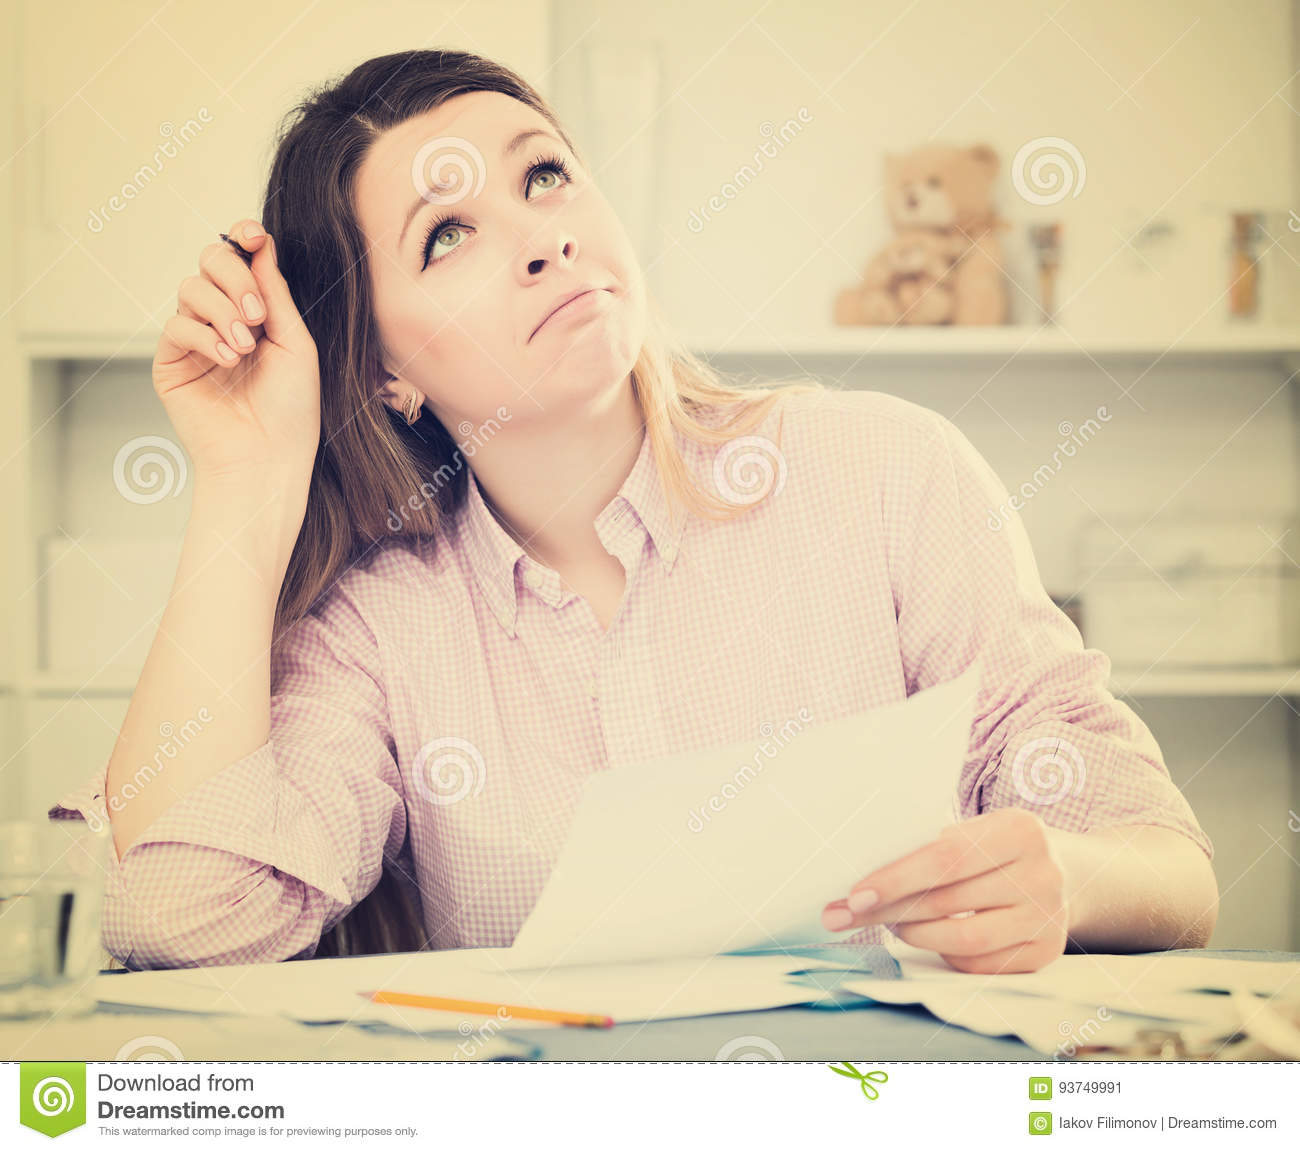 girl signing agreement papers stock image image of home financial